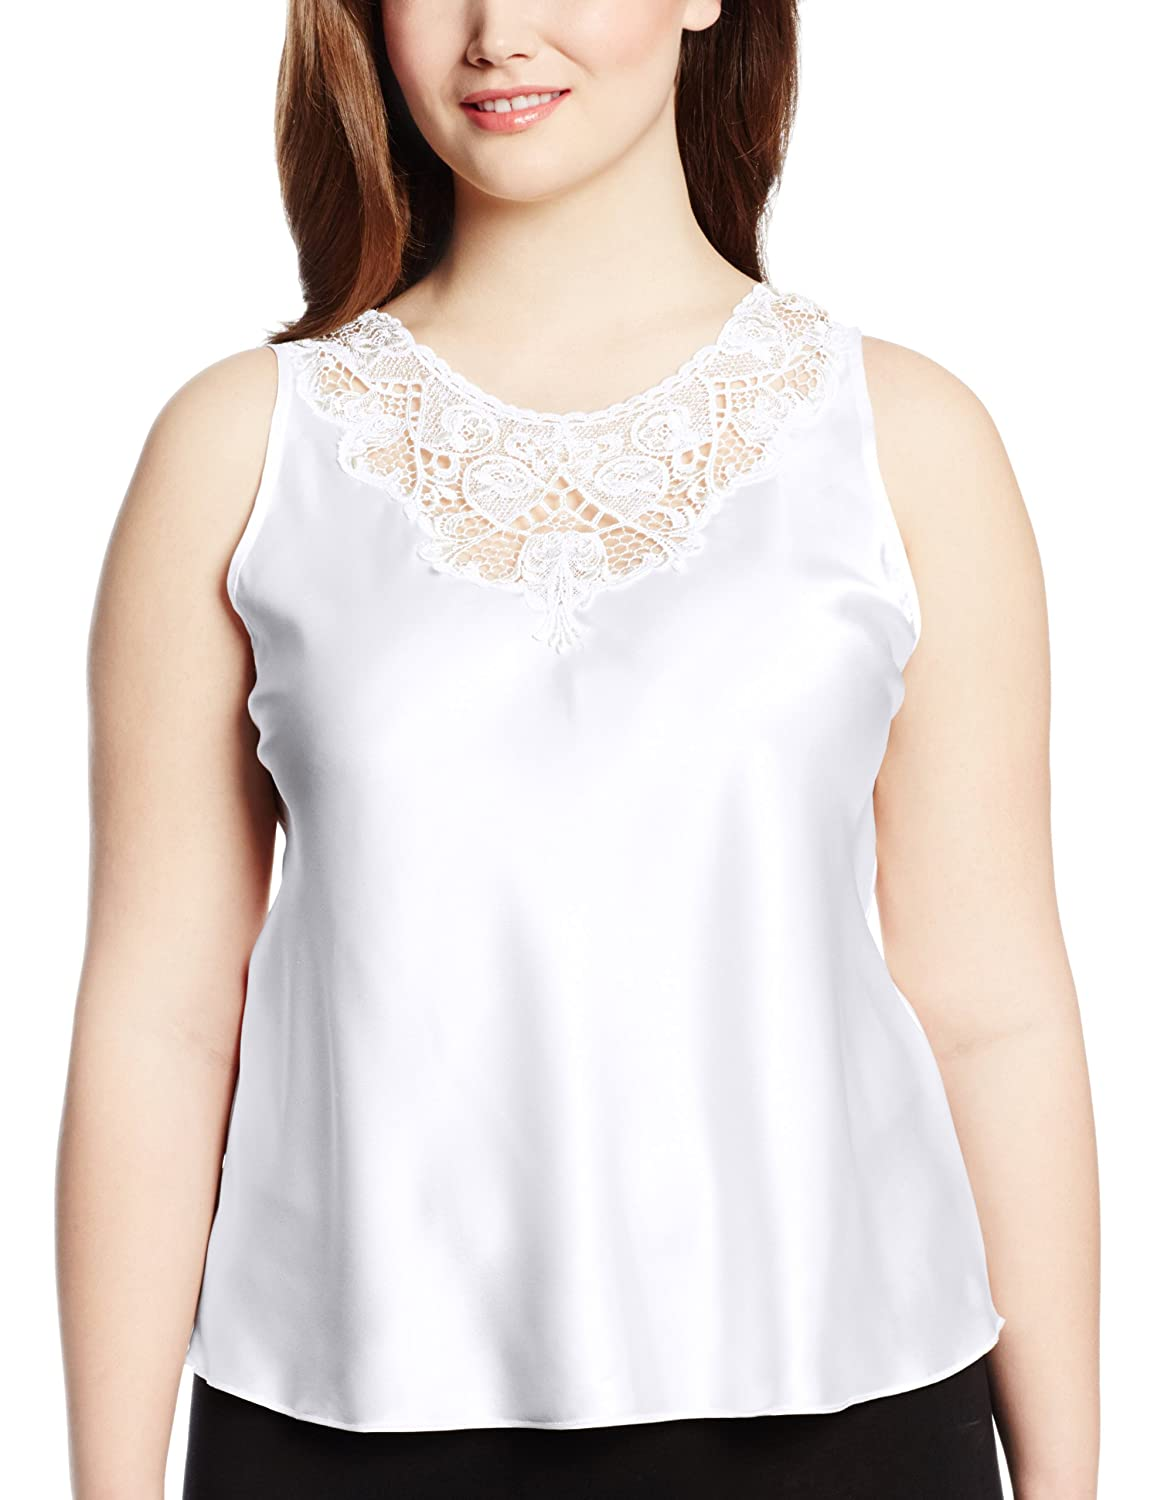 Cinema Etoile womens plus-size Plus Size Charmeuse Camisole With Medallion Lace Cinema Etoile Women's IA 640107X